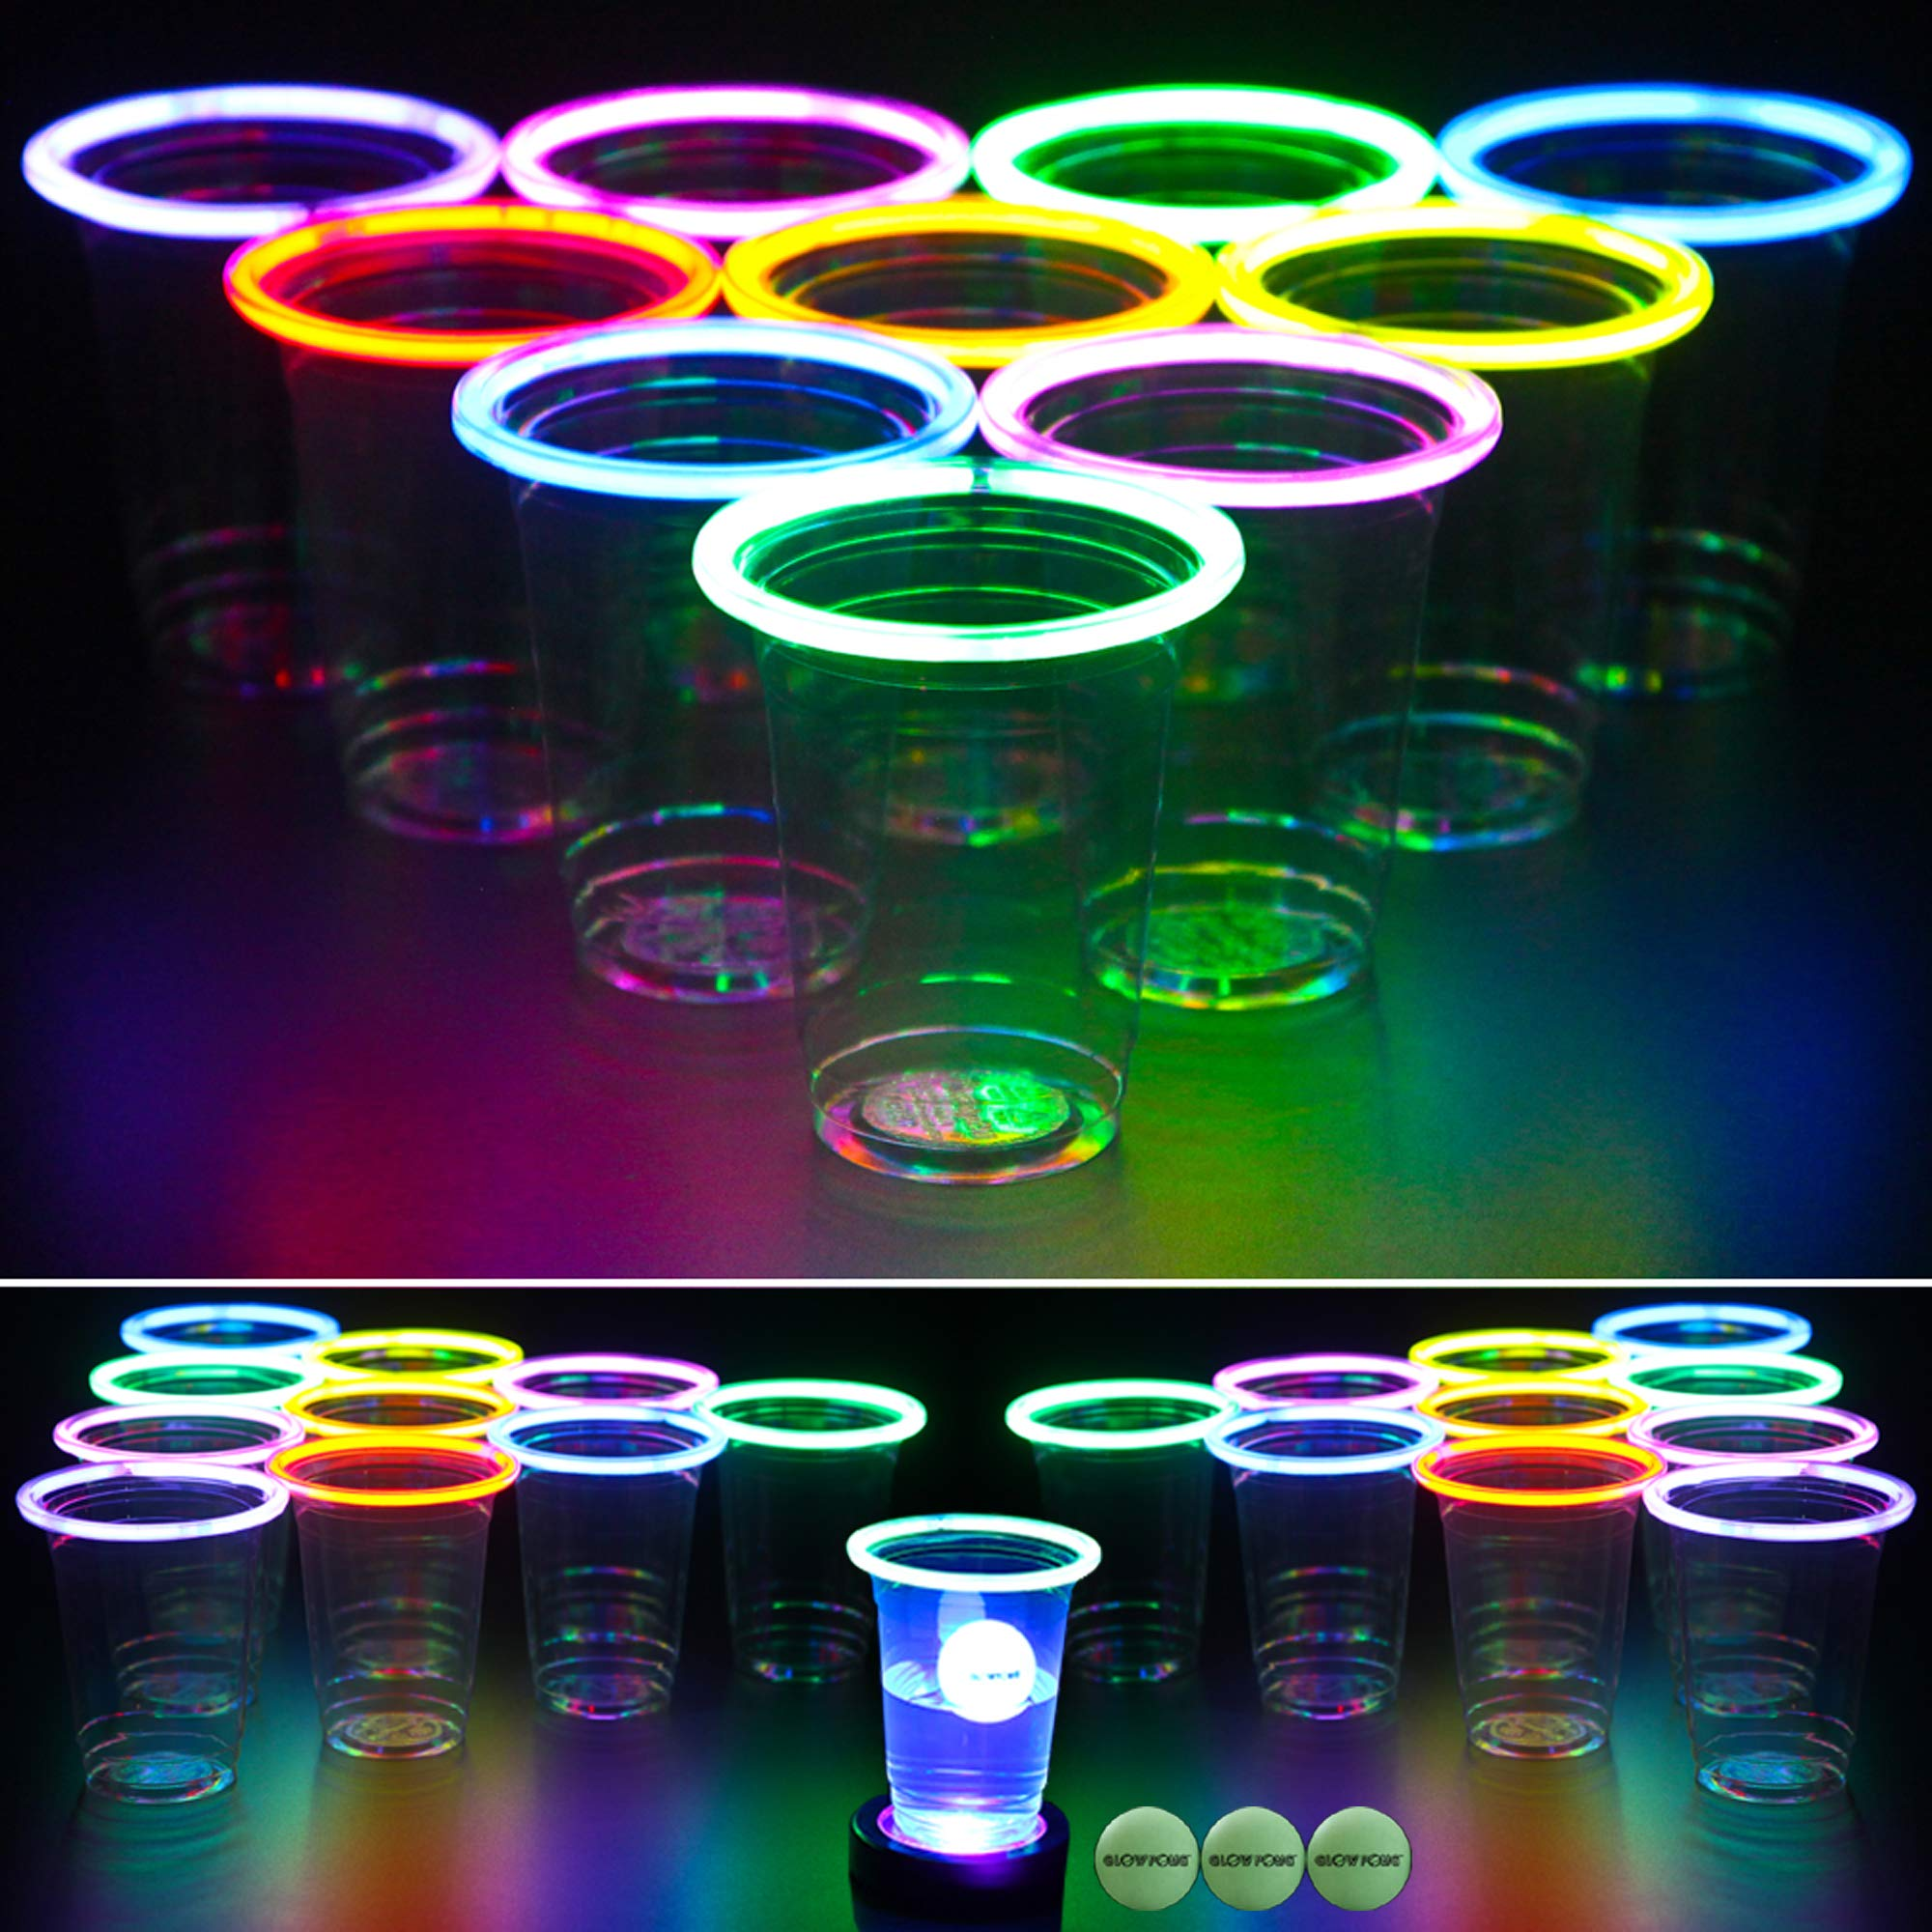 GLOWPONG All Mixed Up Glow-in-The-Dark Beer Pong Game Set for Indoor Outdoor Nighttime Competitive Fun, 24 Multi-Color Glowing Cups, 4 Glowing Balls, 1 Ball Charging Unit Makes Every Shot Glow by GLOWPONG